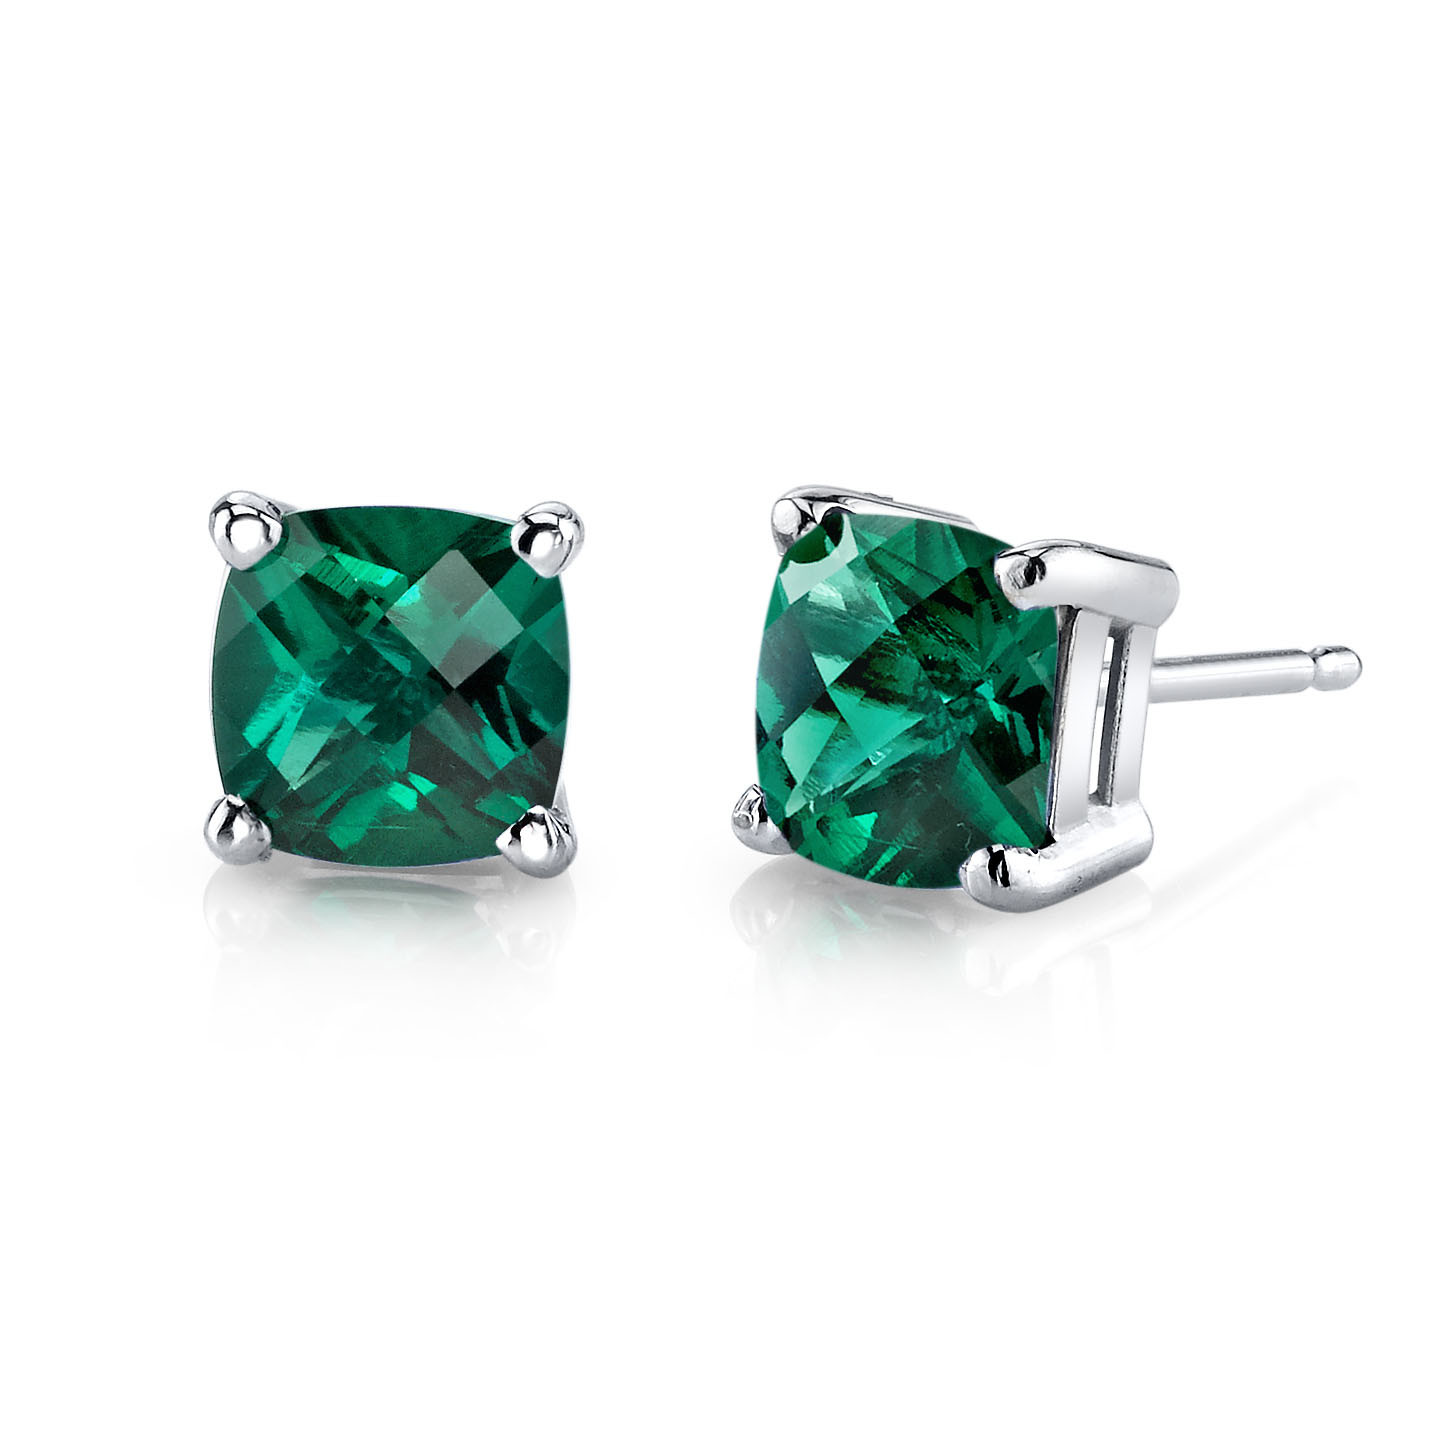 Cushion Cut Emerald Stud Earrings In 9ct White Gold